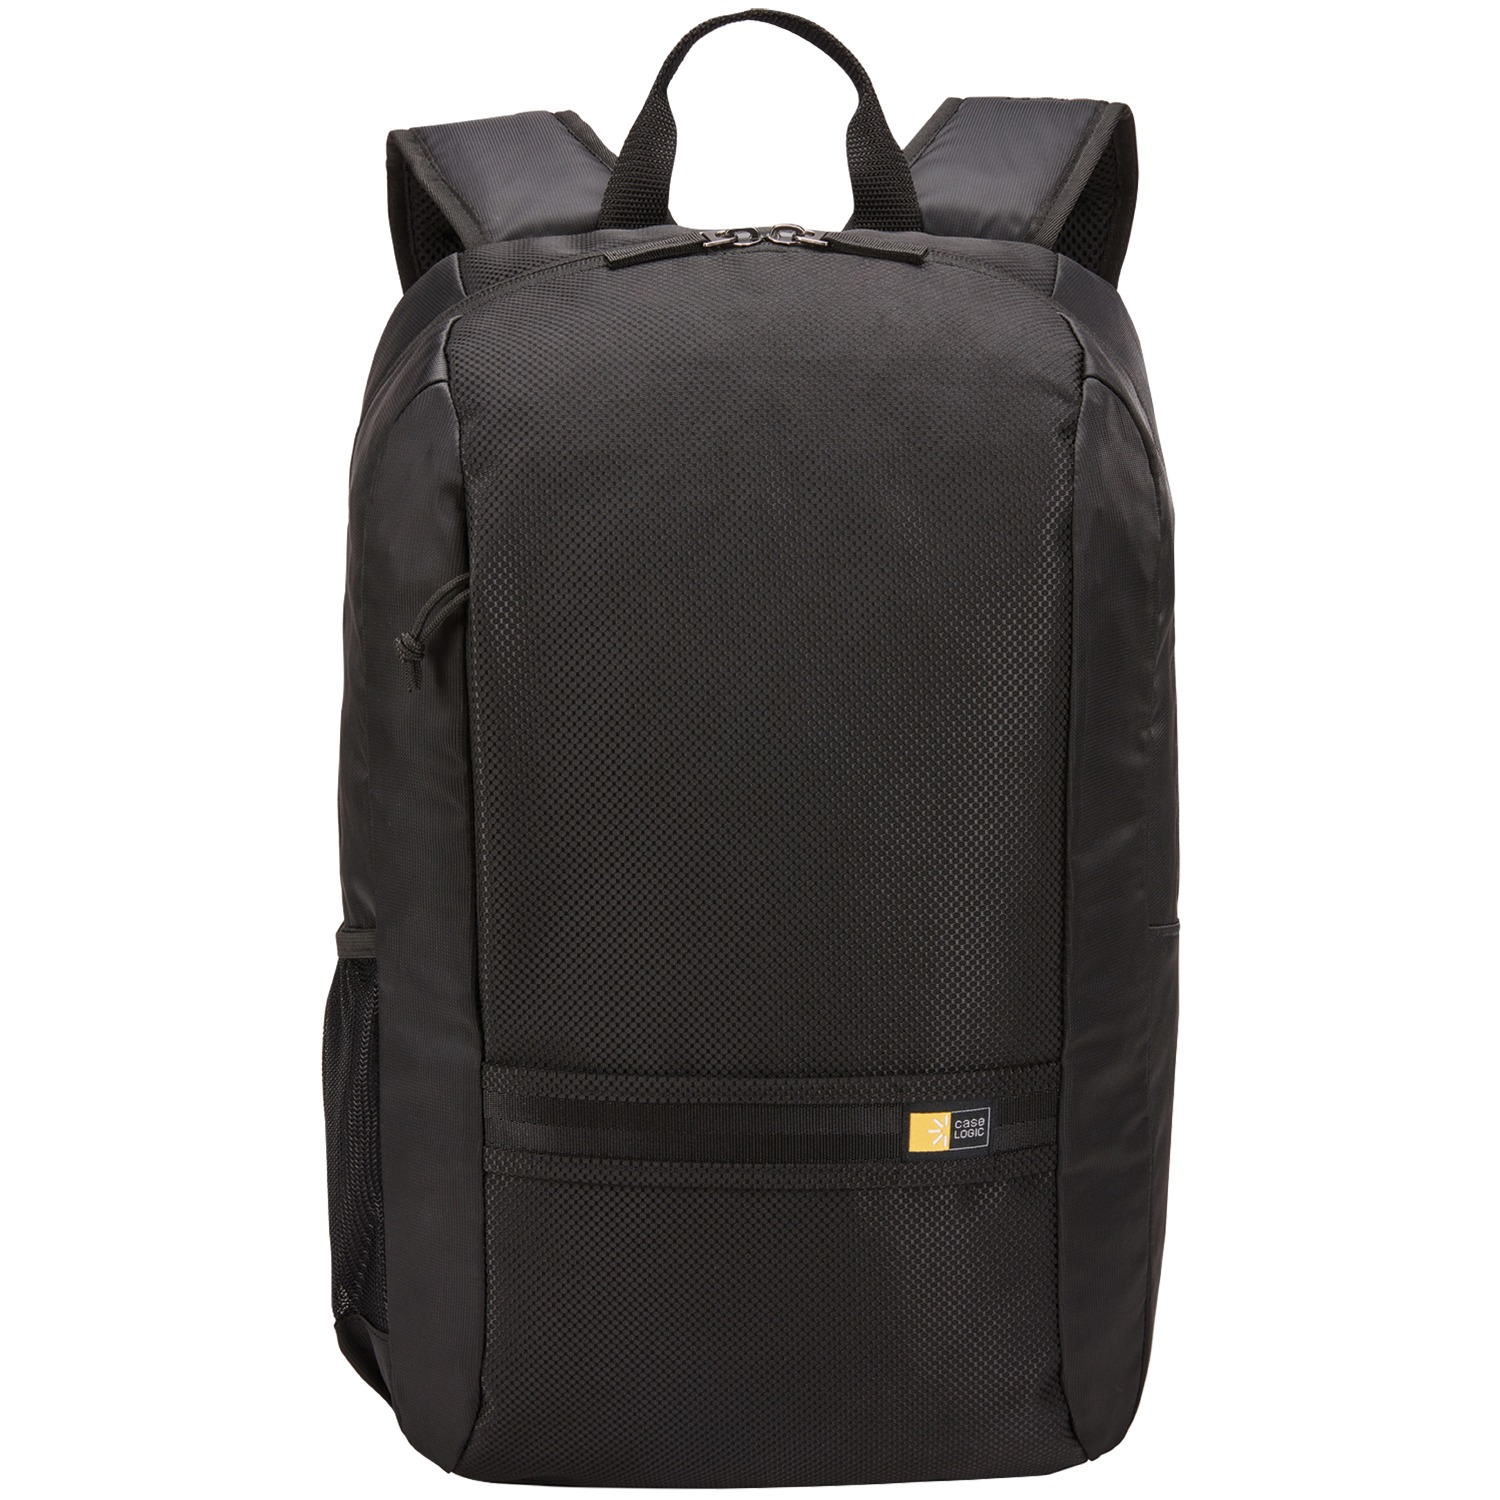 "Key 15.6"" Laptop Backpack"